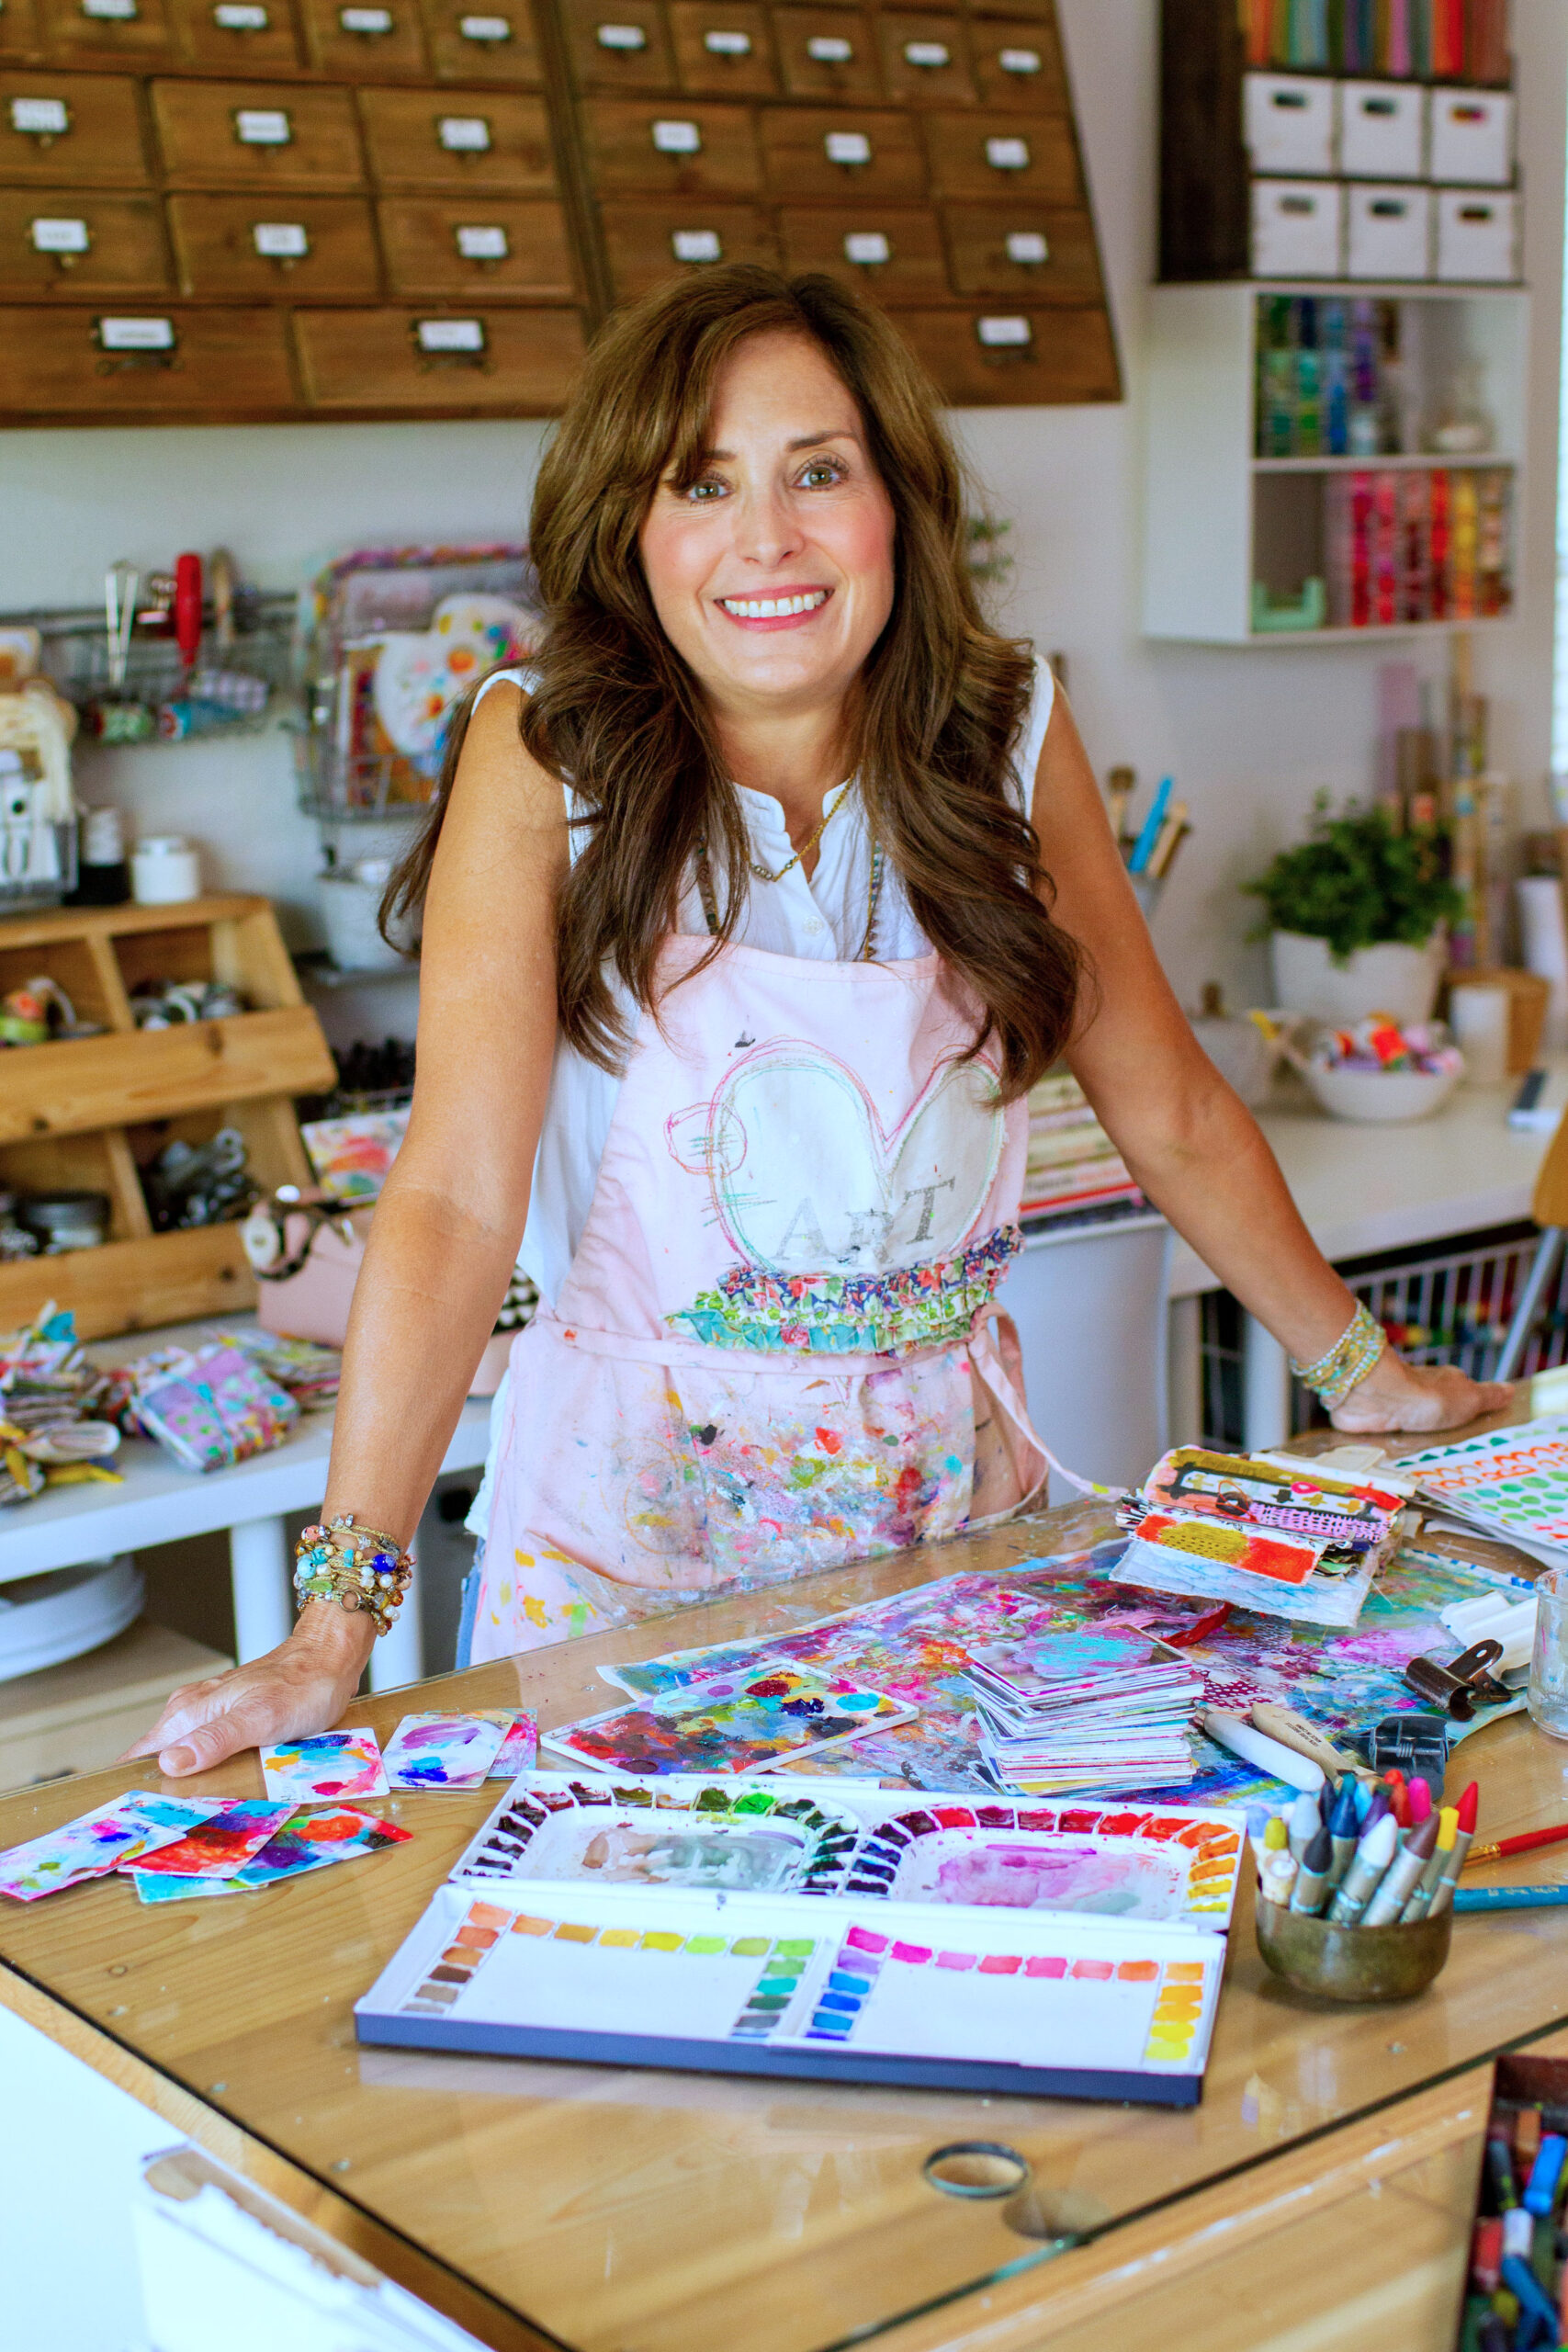 #167 Rae Missigman: Making Art and Sharing with Others